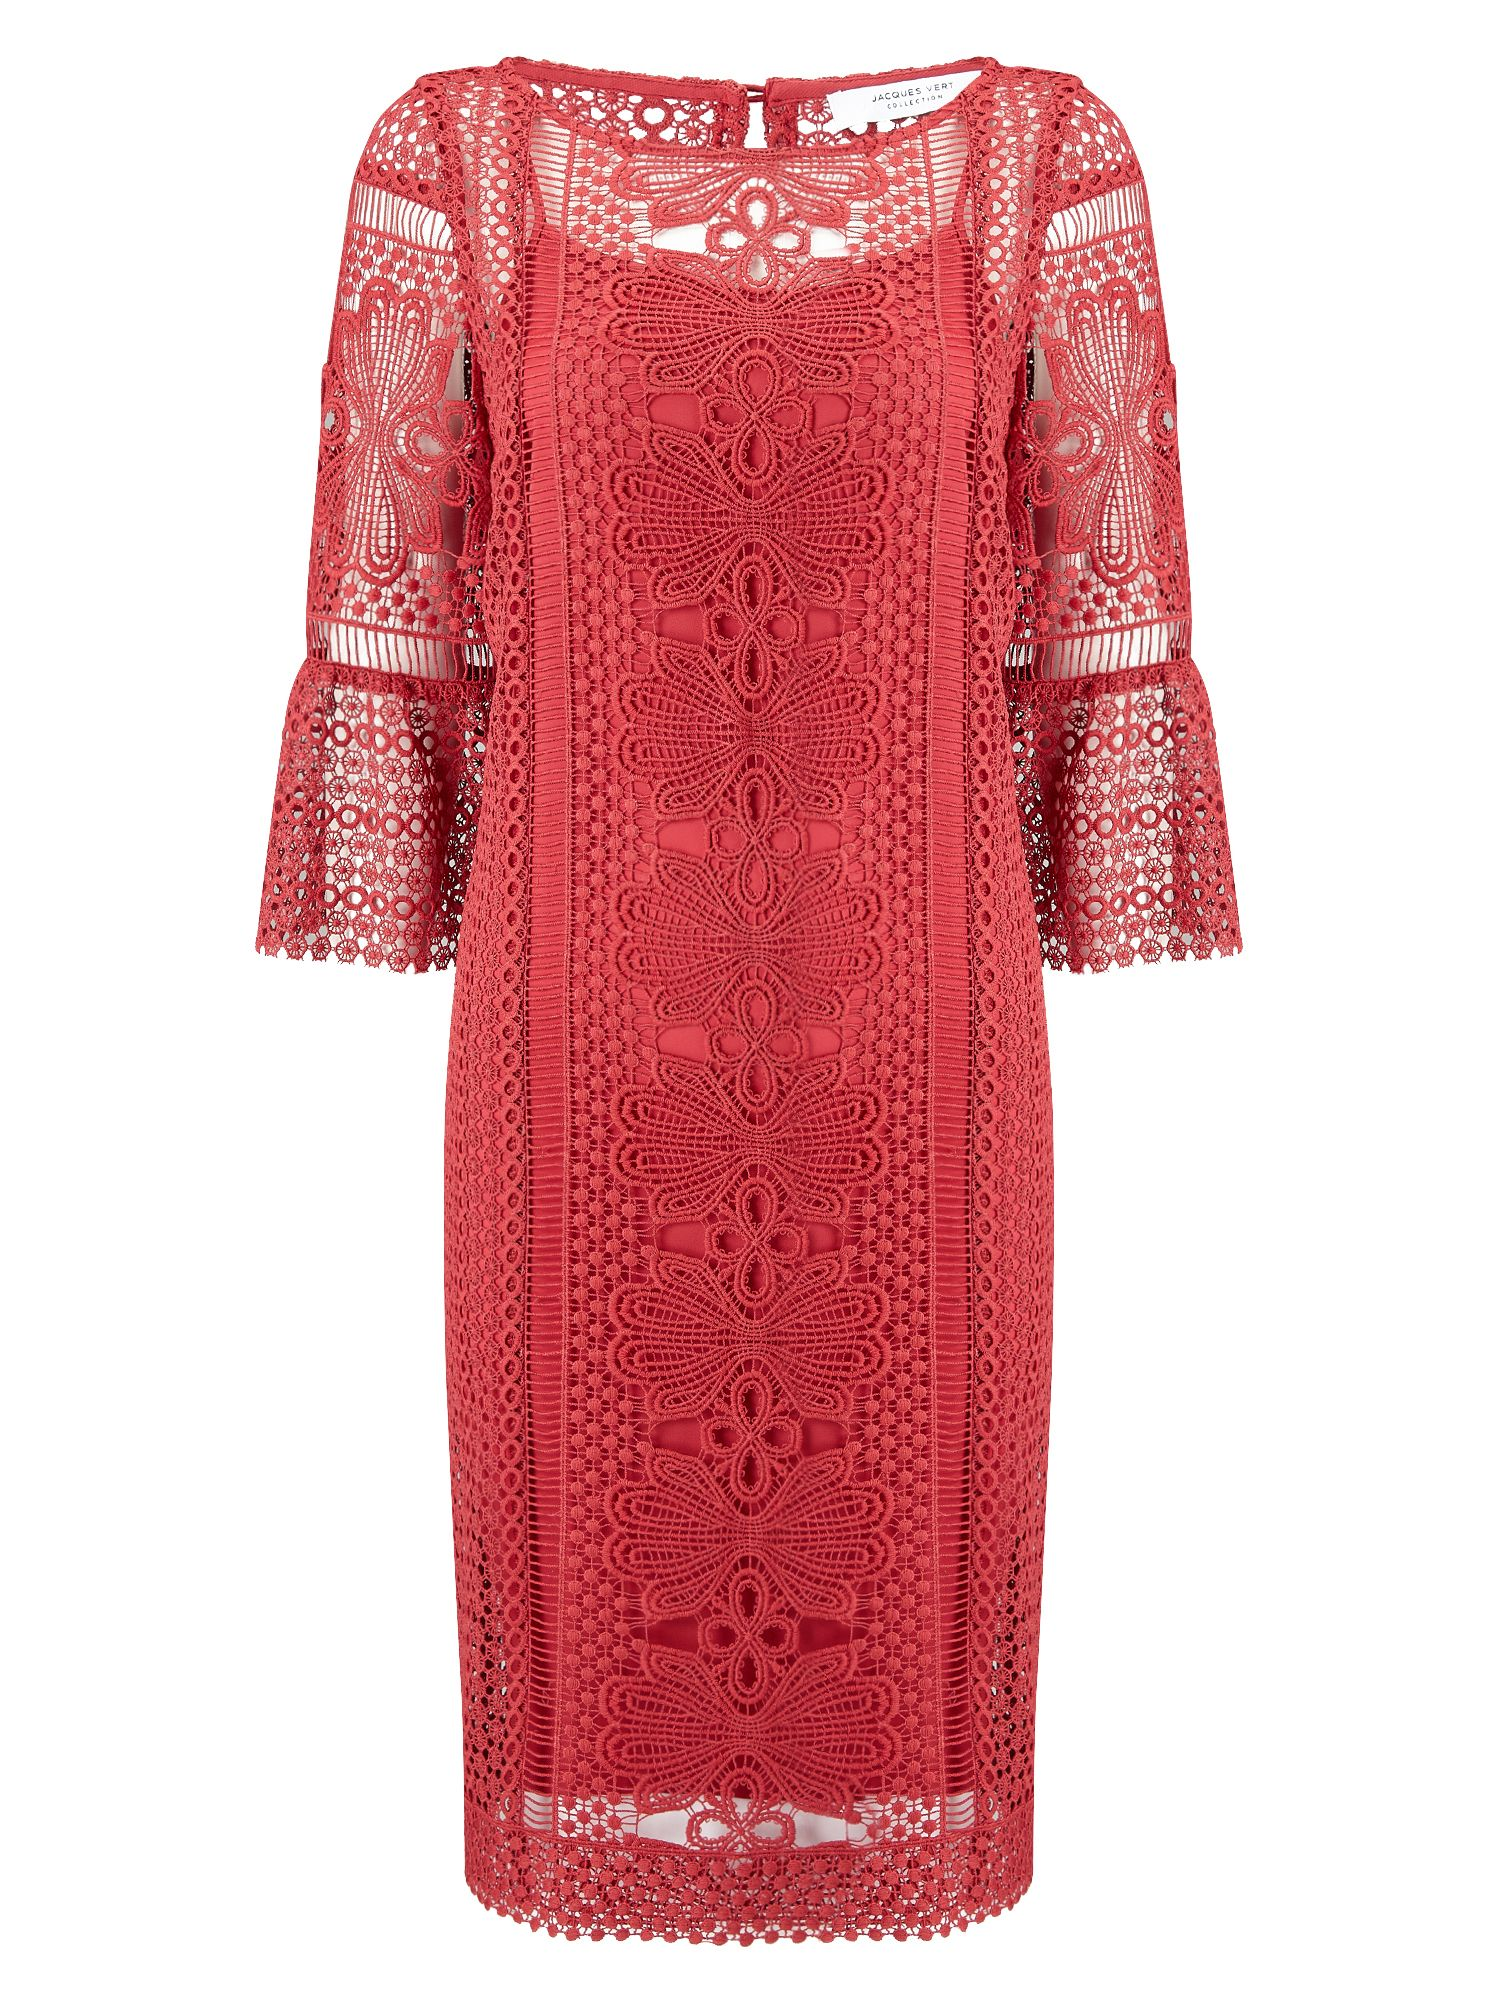 Jacques Vert Lace Tunic Dress, Red